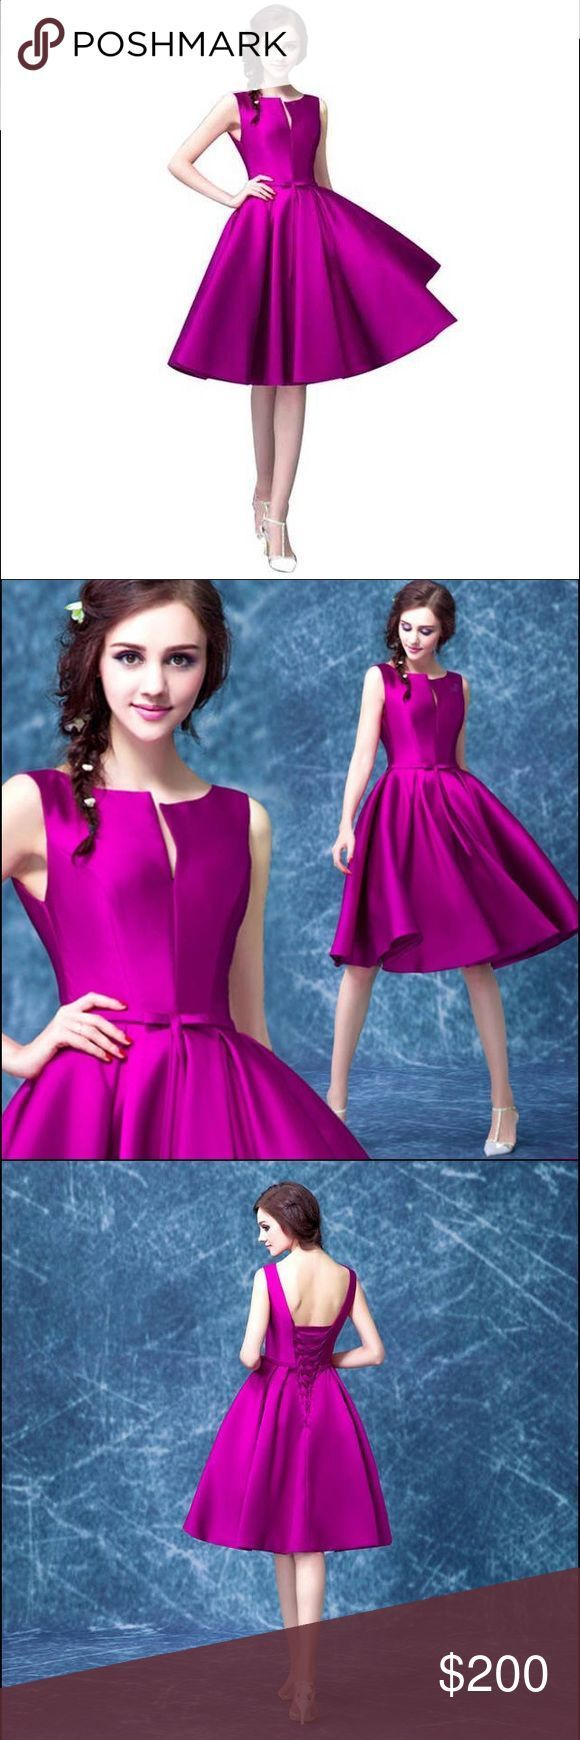 fuschia pink prom dress satin fabric Graduation Dress Fuchsia Prom Gown with Bow…